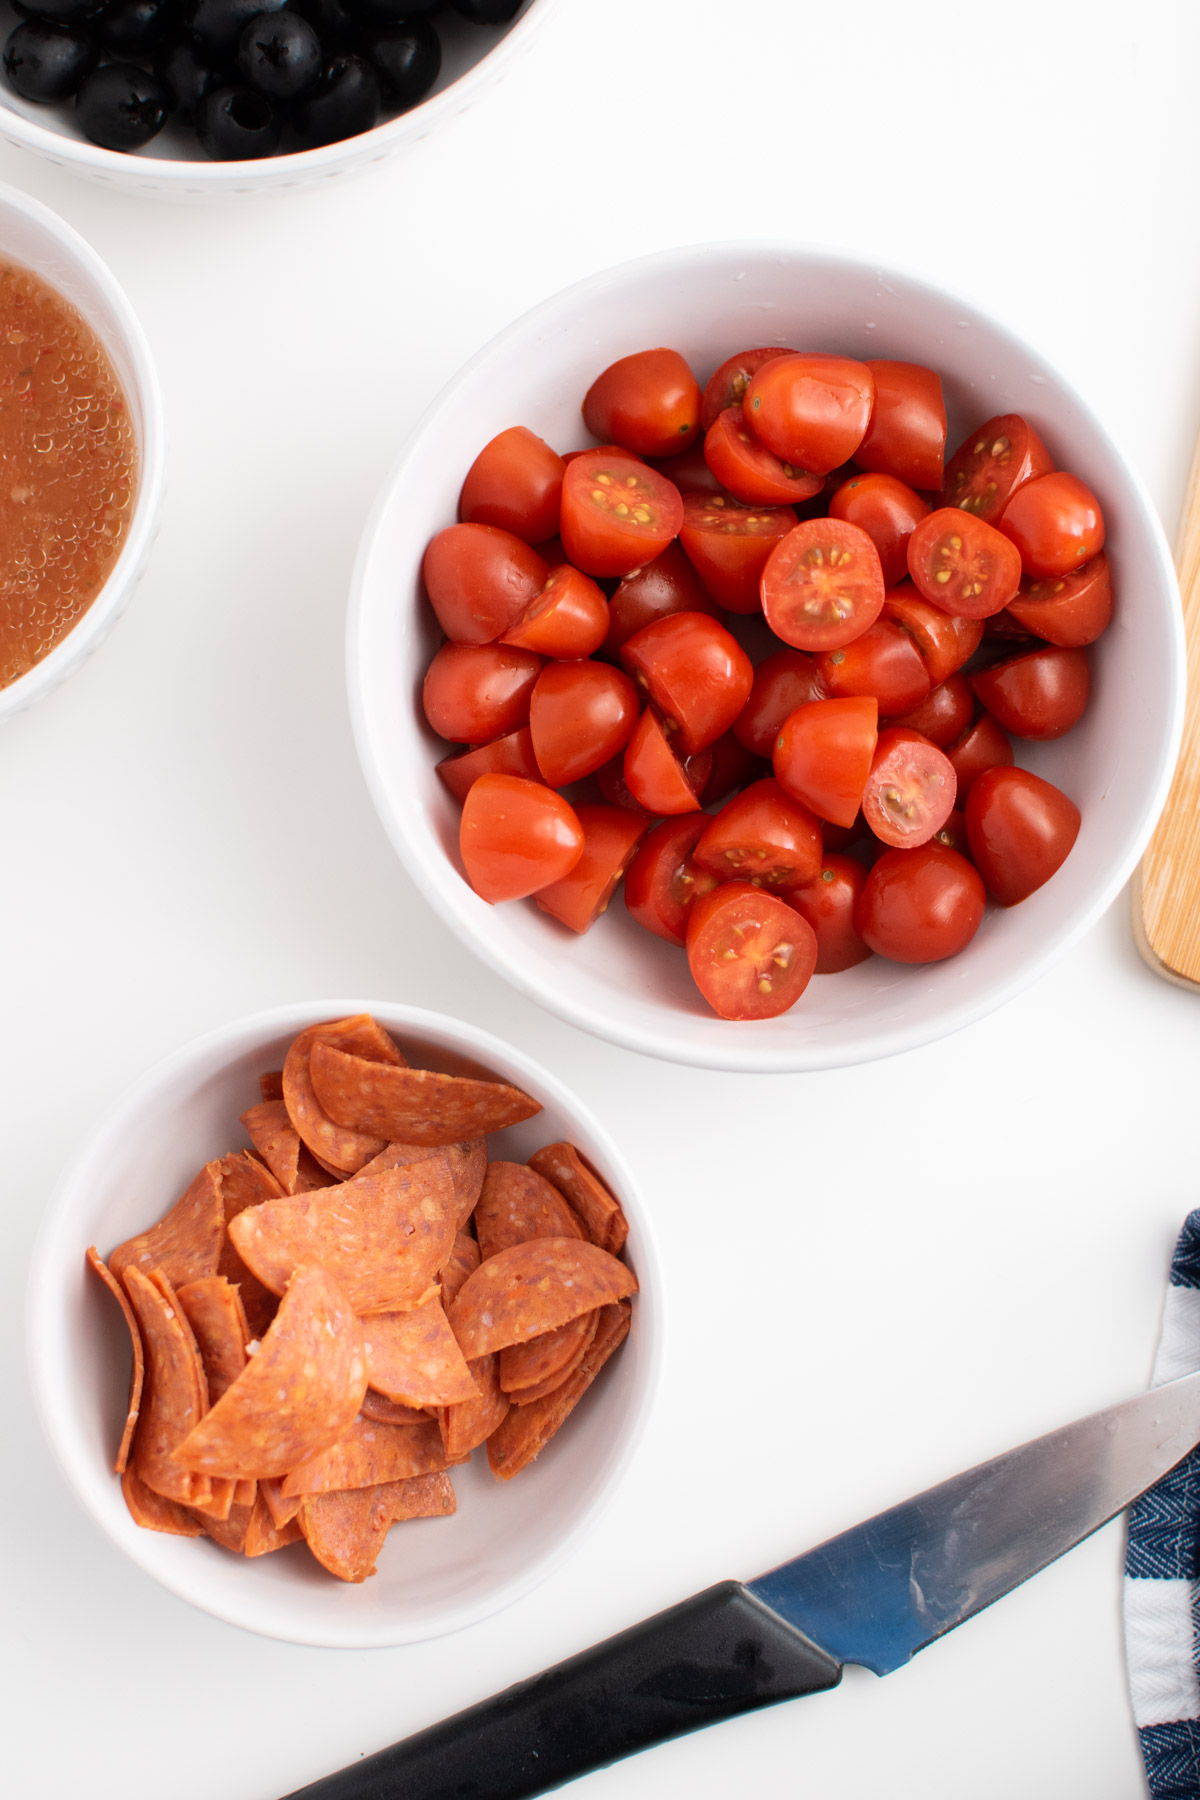 Chopped pepperoni, olives and tomatoes in white kitchen prep bowls on white table.